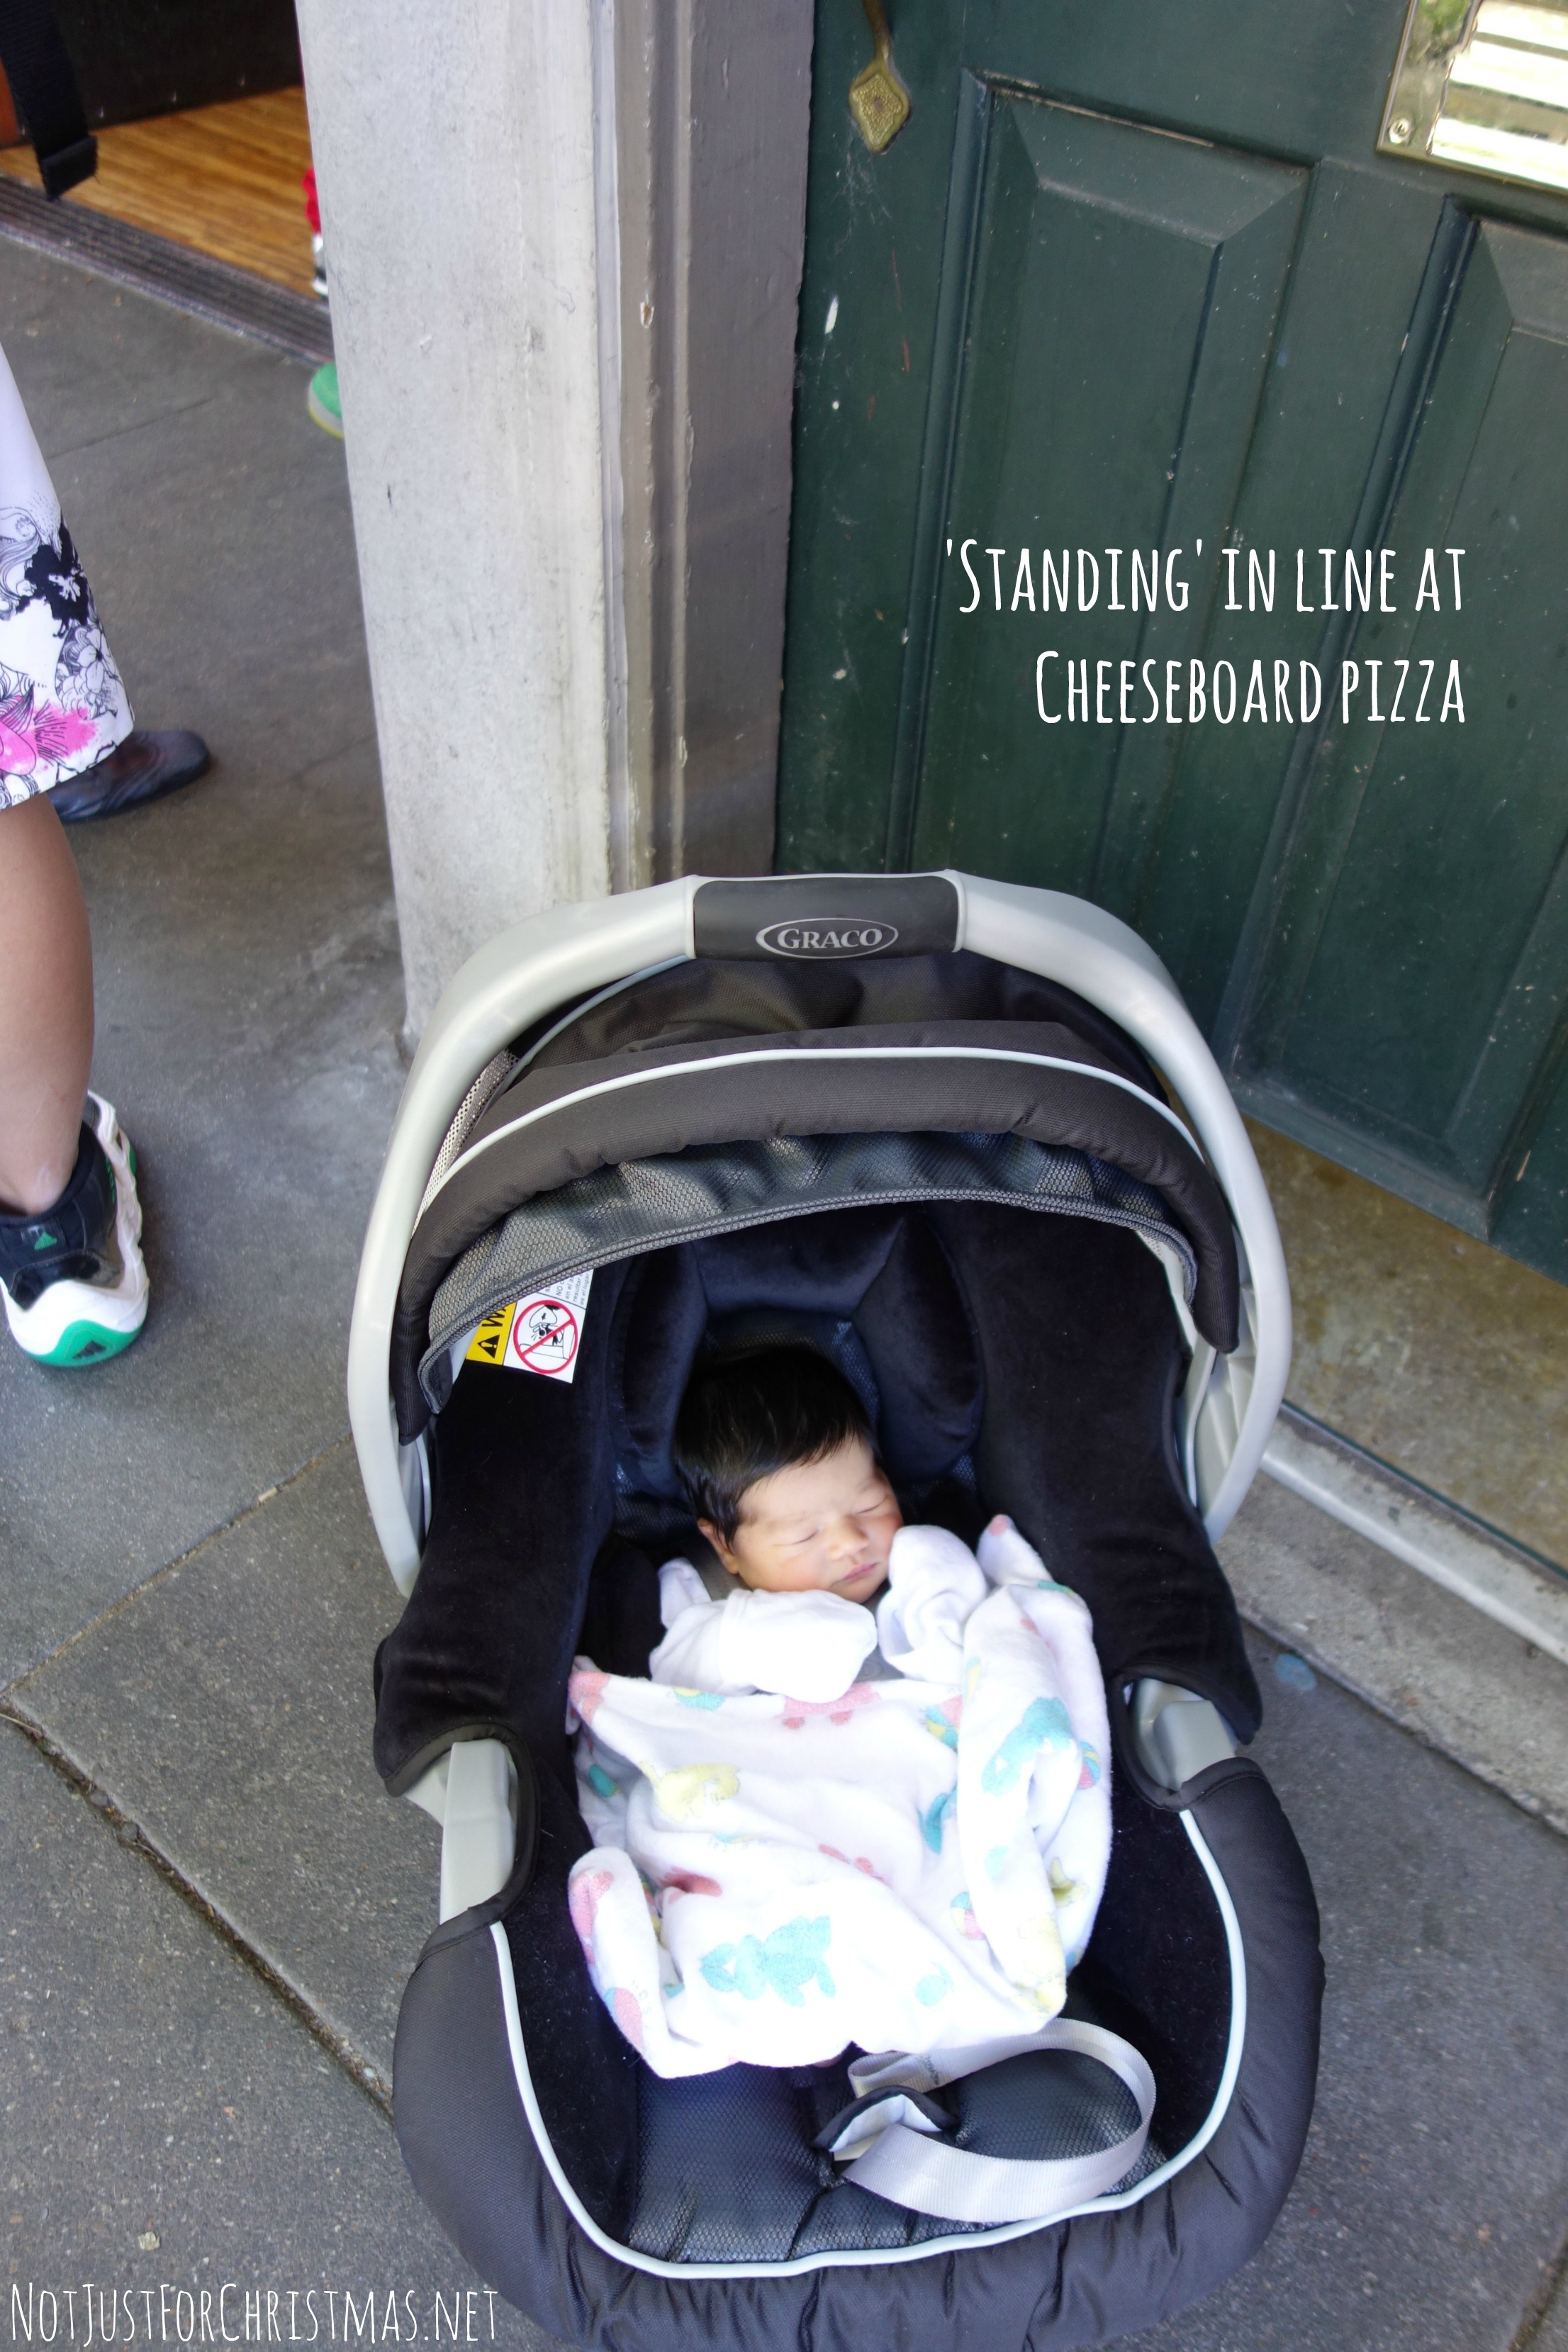 standing in line cheeseboard pizza.jpg